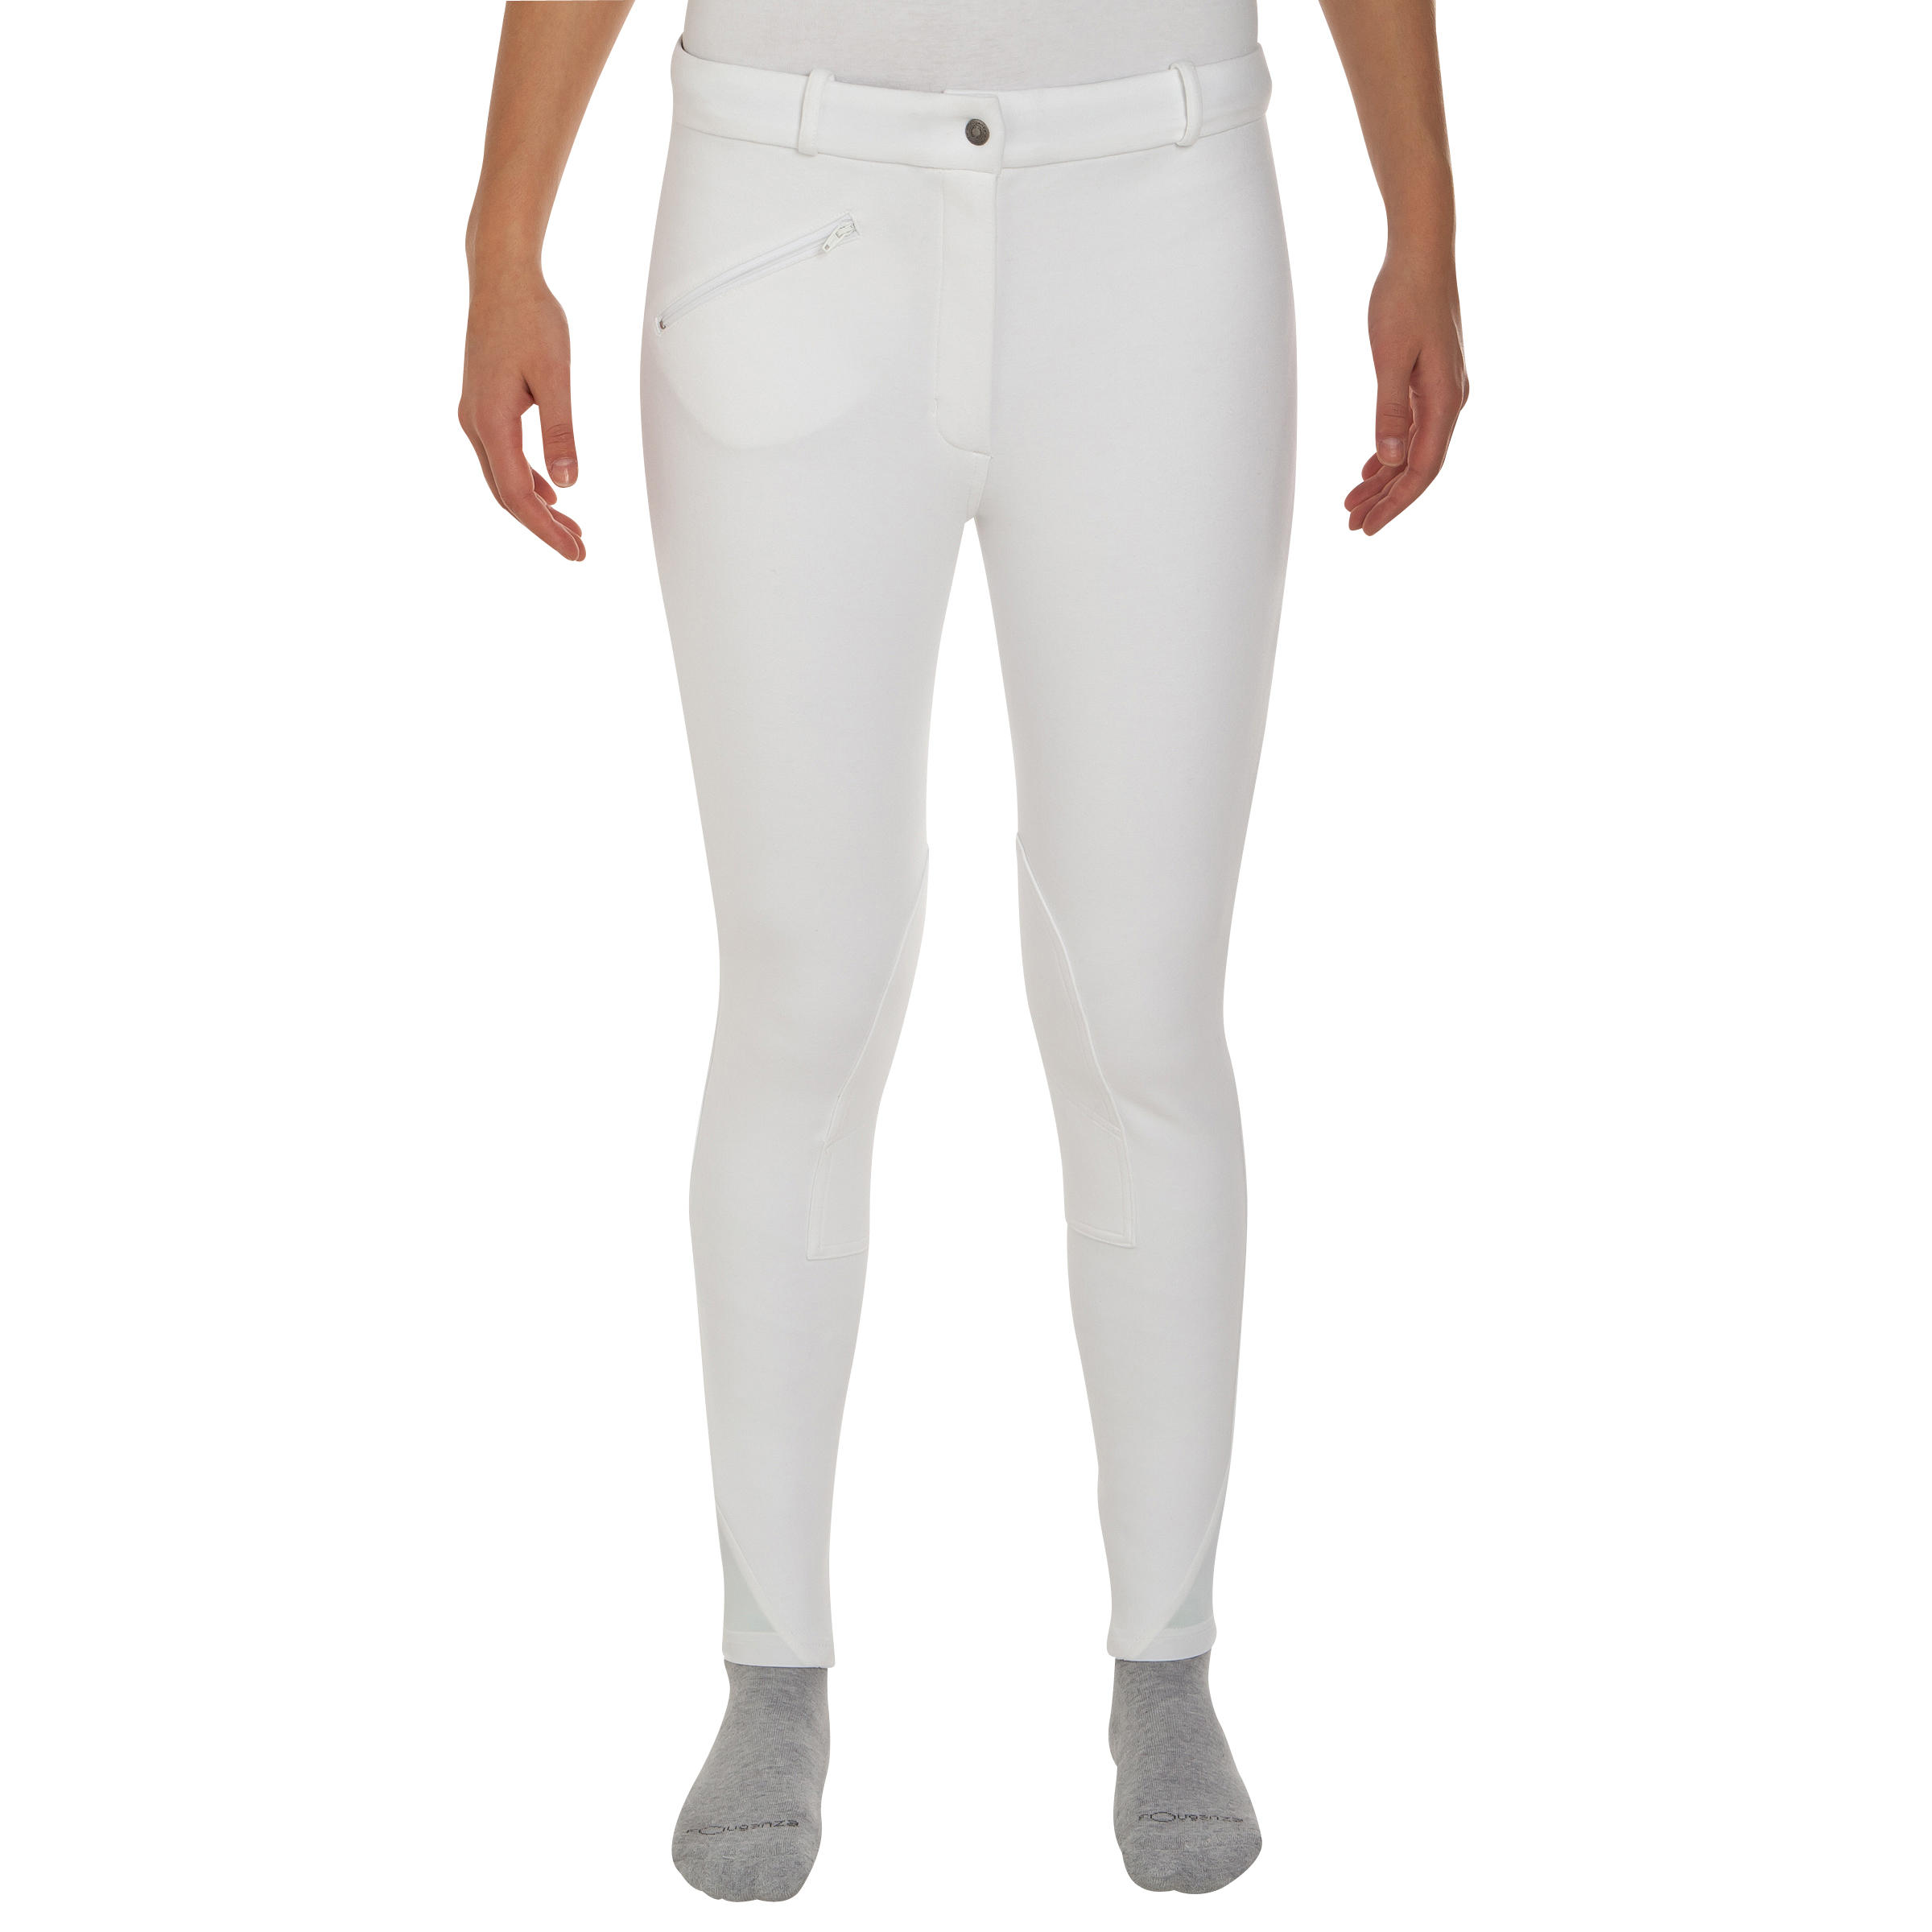 Adult Women's Horse Riding 100 Competition Jodhpurs - White